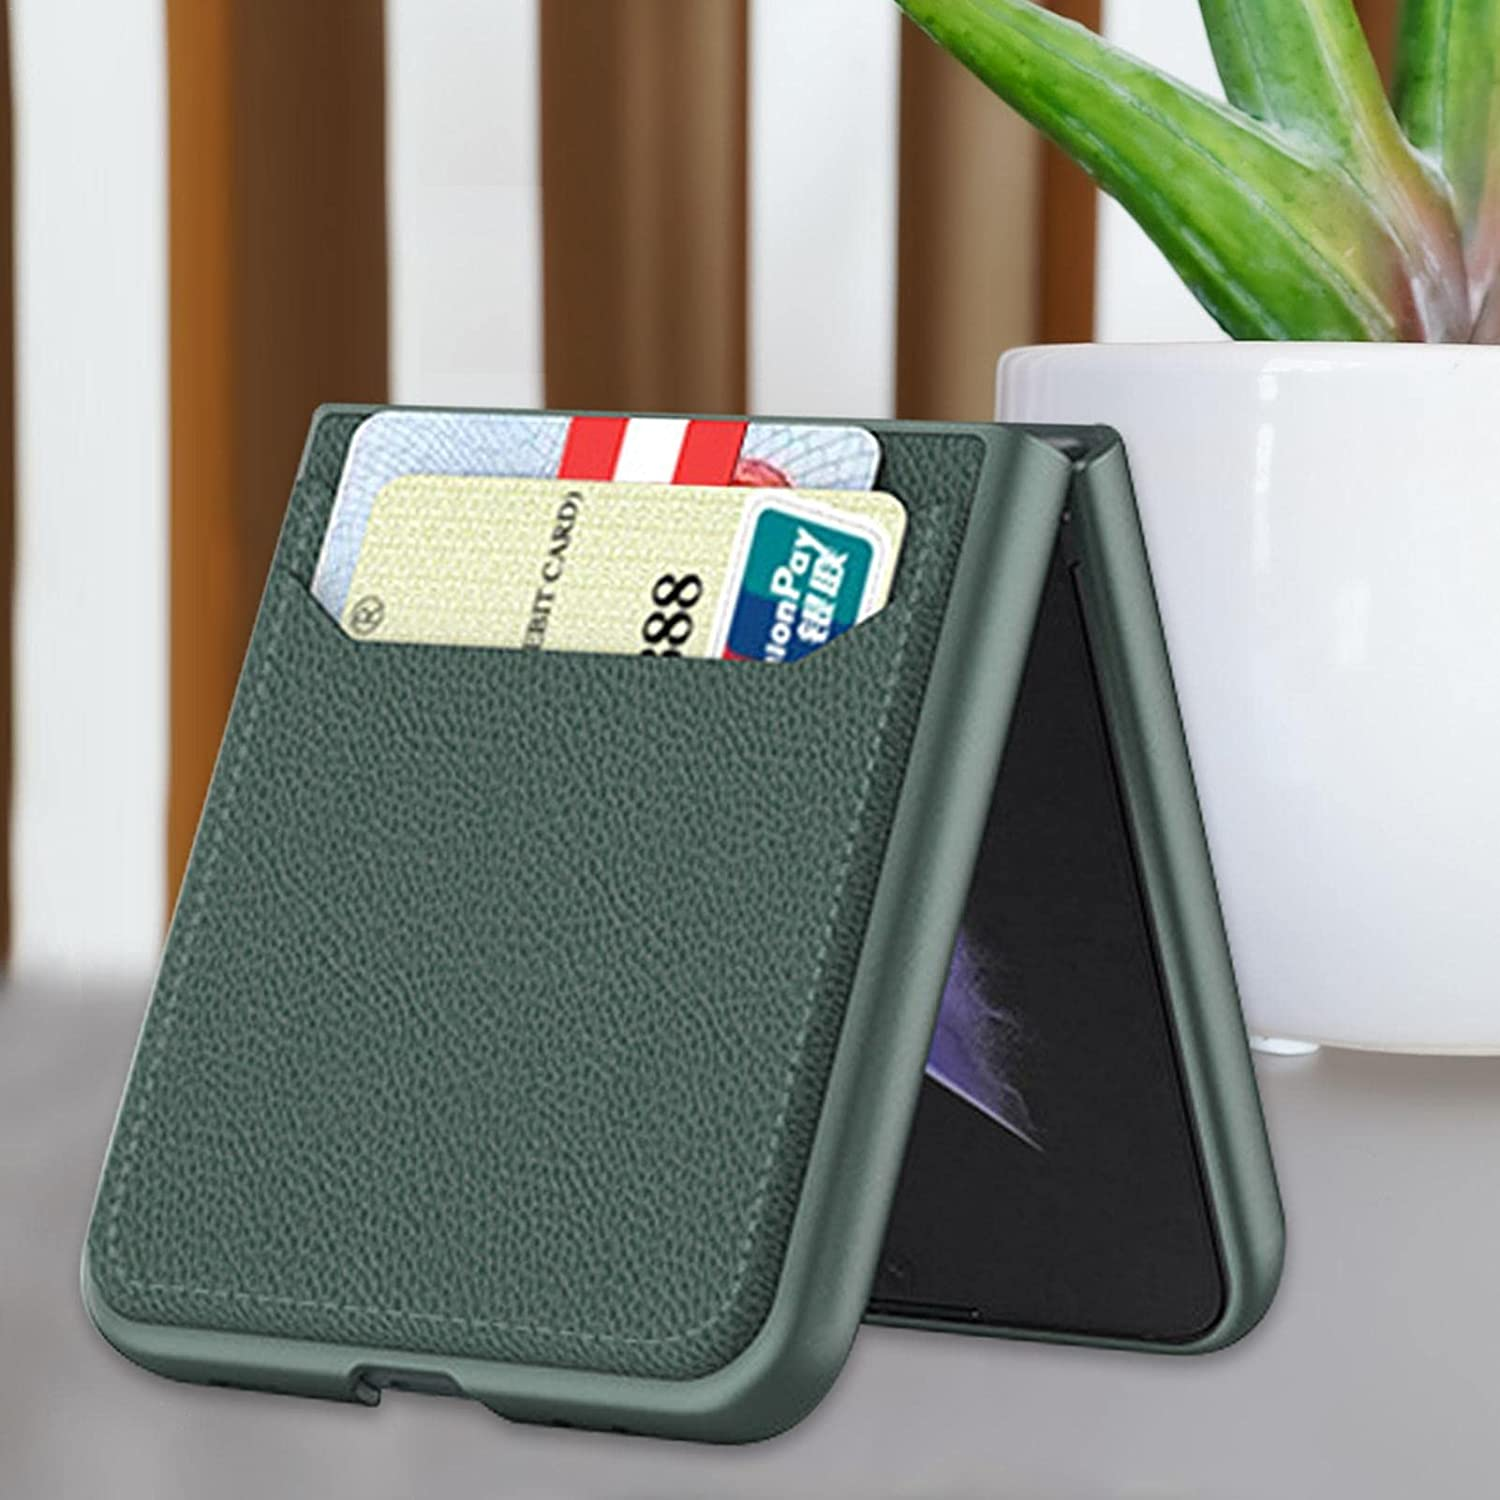 Phone Case for Samsung Galaxy Z Flip 3 5G   Foldable Premium Thin PU Leather Hard PC Slim Phone Case   Durable Anti-Scratch Protective Case Cover for Galaxy Z Flip 3 5G 2021